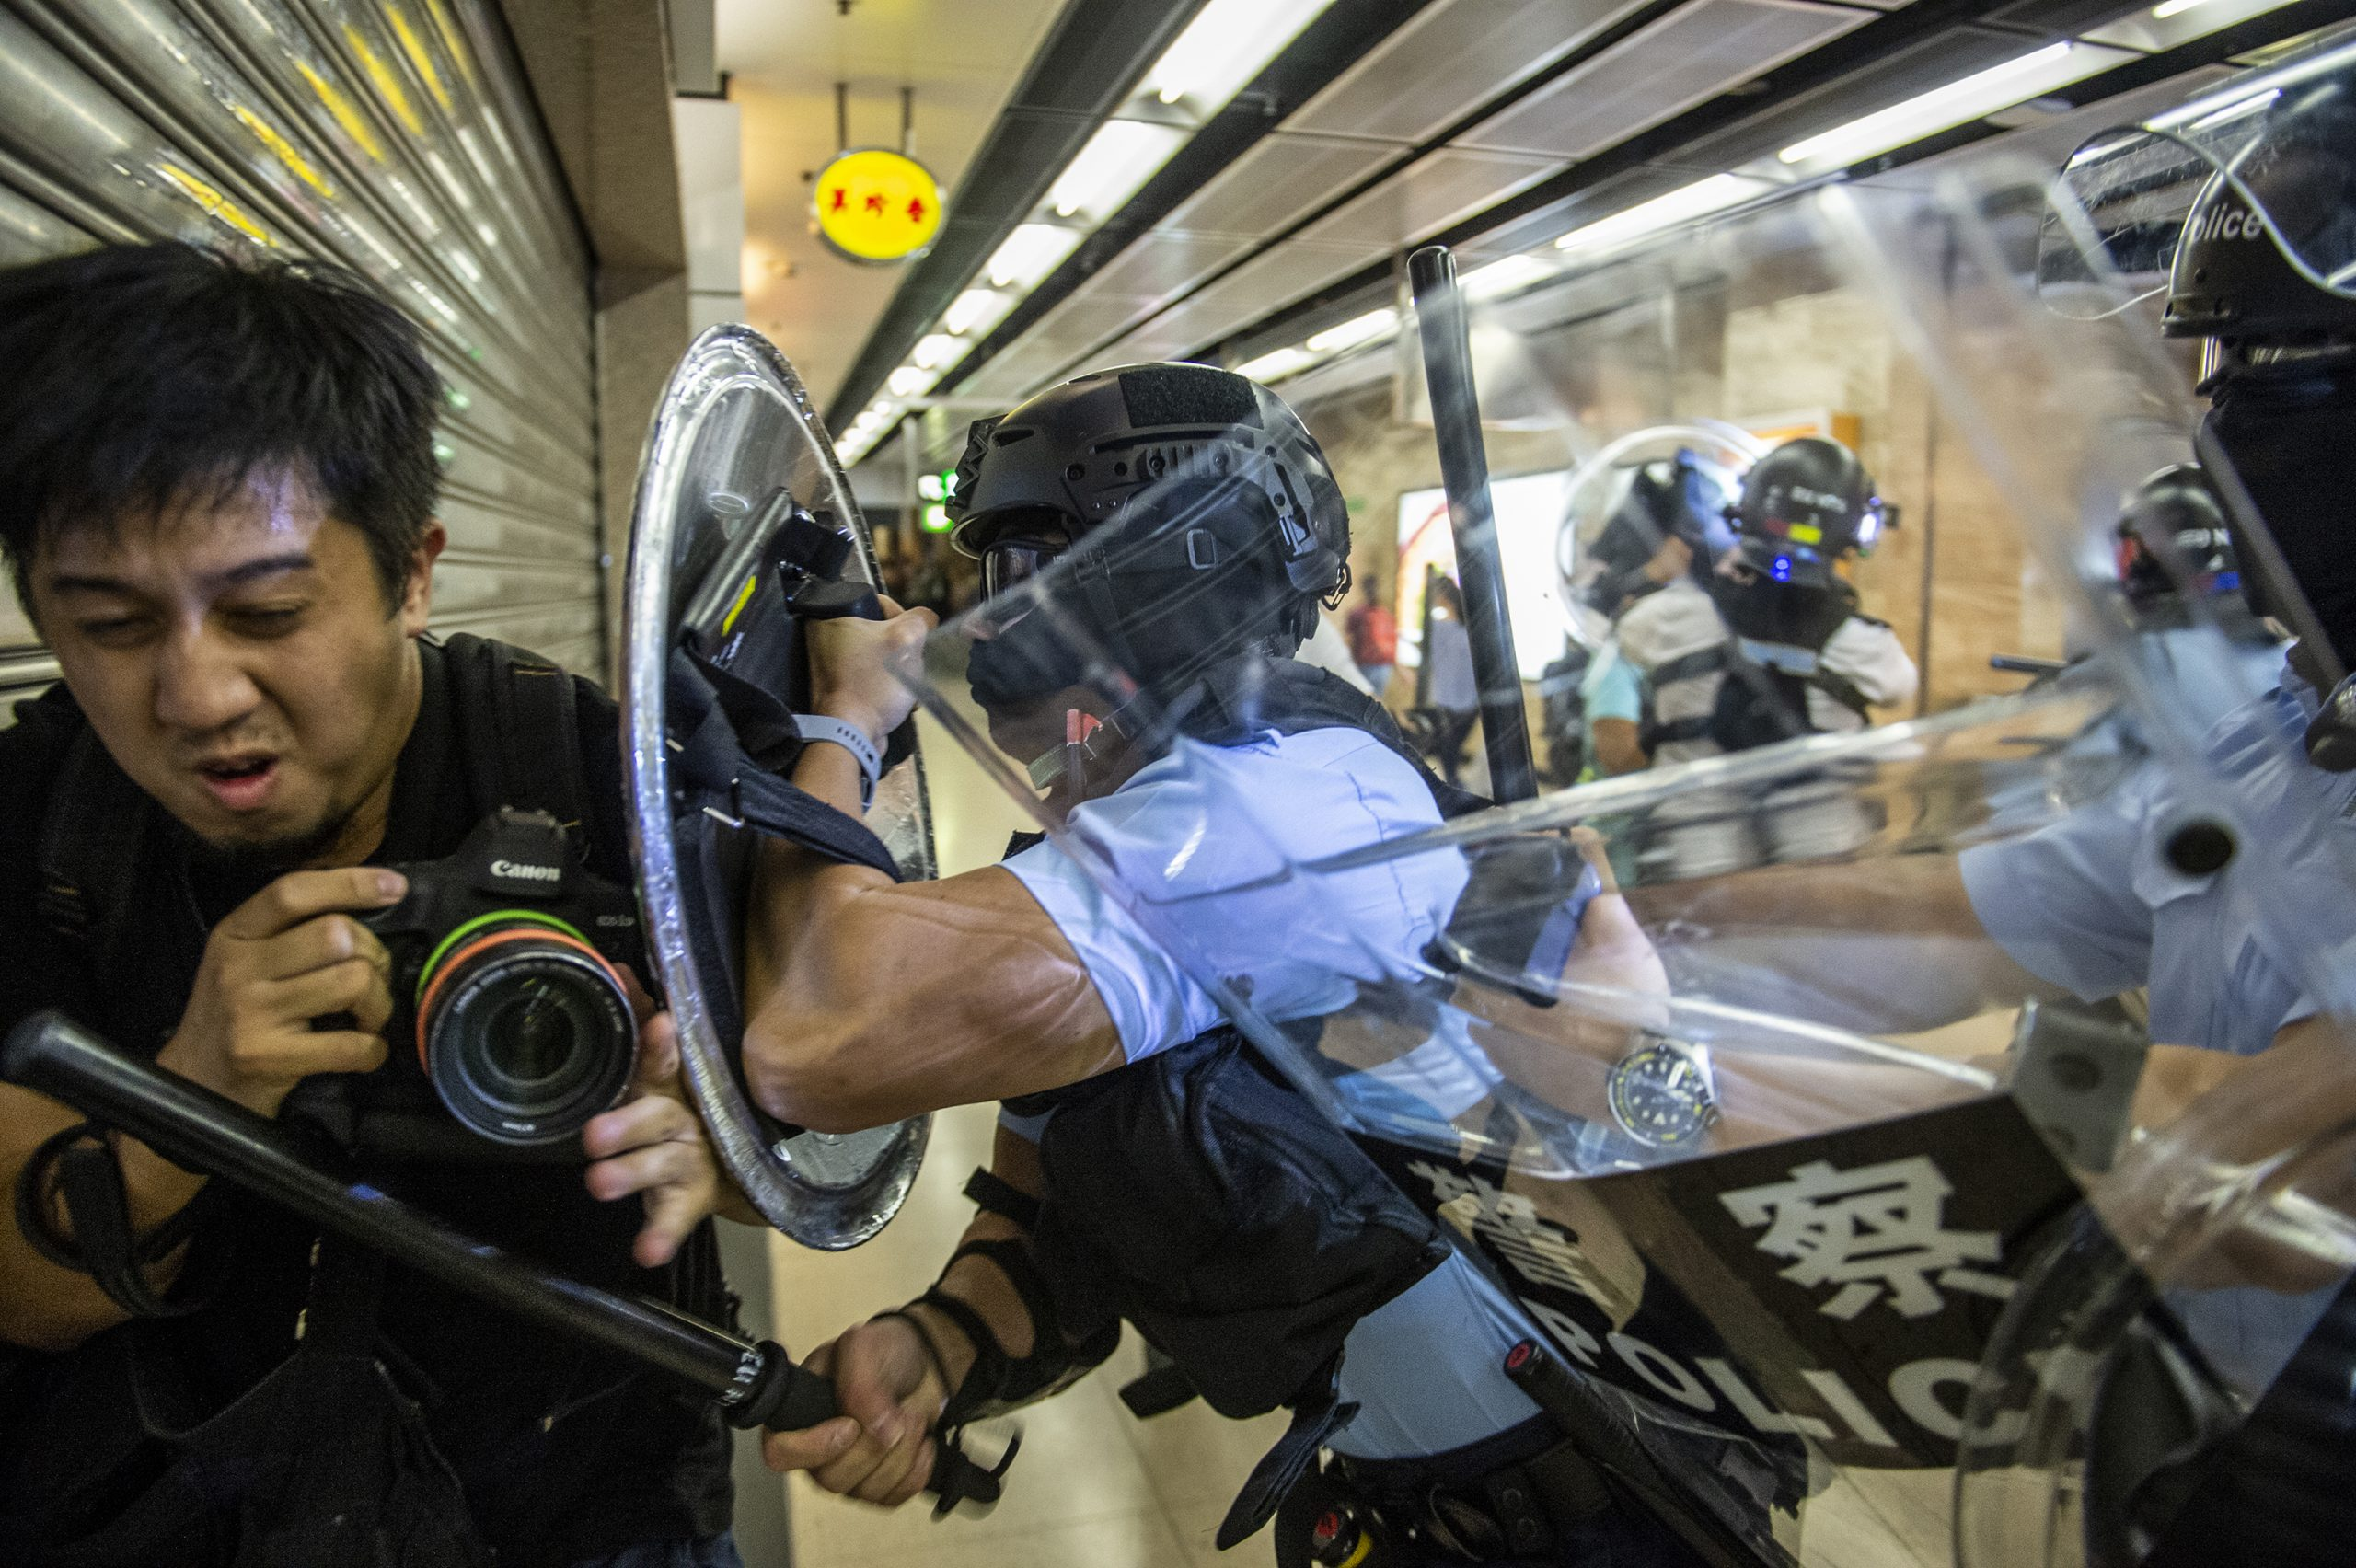 A photographer is attacked by police during an anti-government protest.